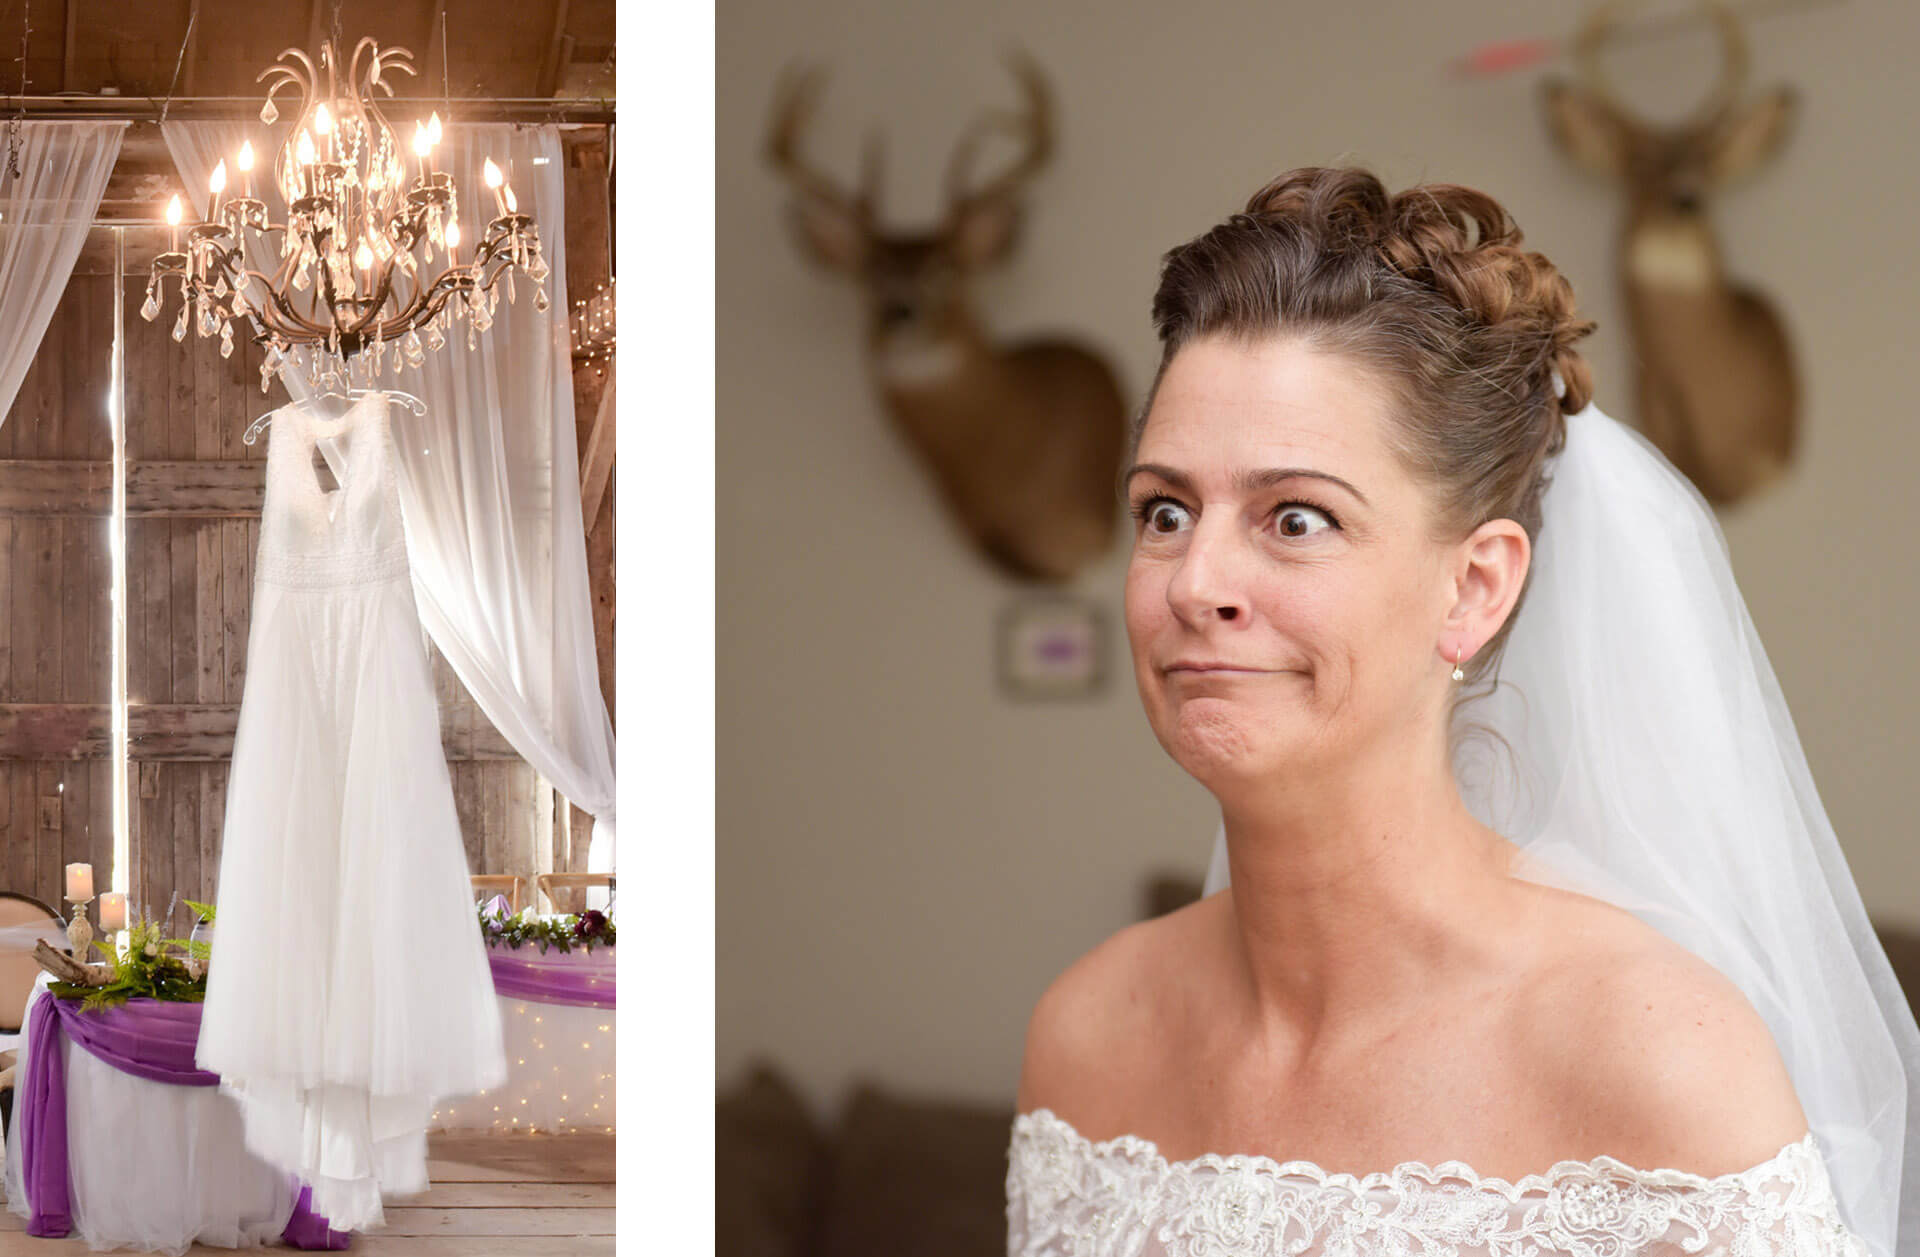 Two photos featuring Michigan weddings. Wedding dress on display at the Vale Royal Barn in Fenton, MI and the other of a bride talking to her sisters at home with two deer heads behind her.